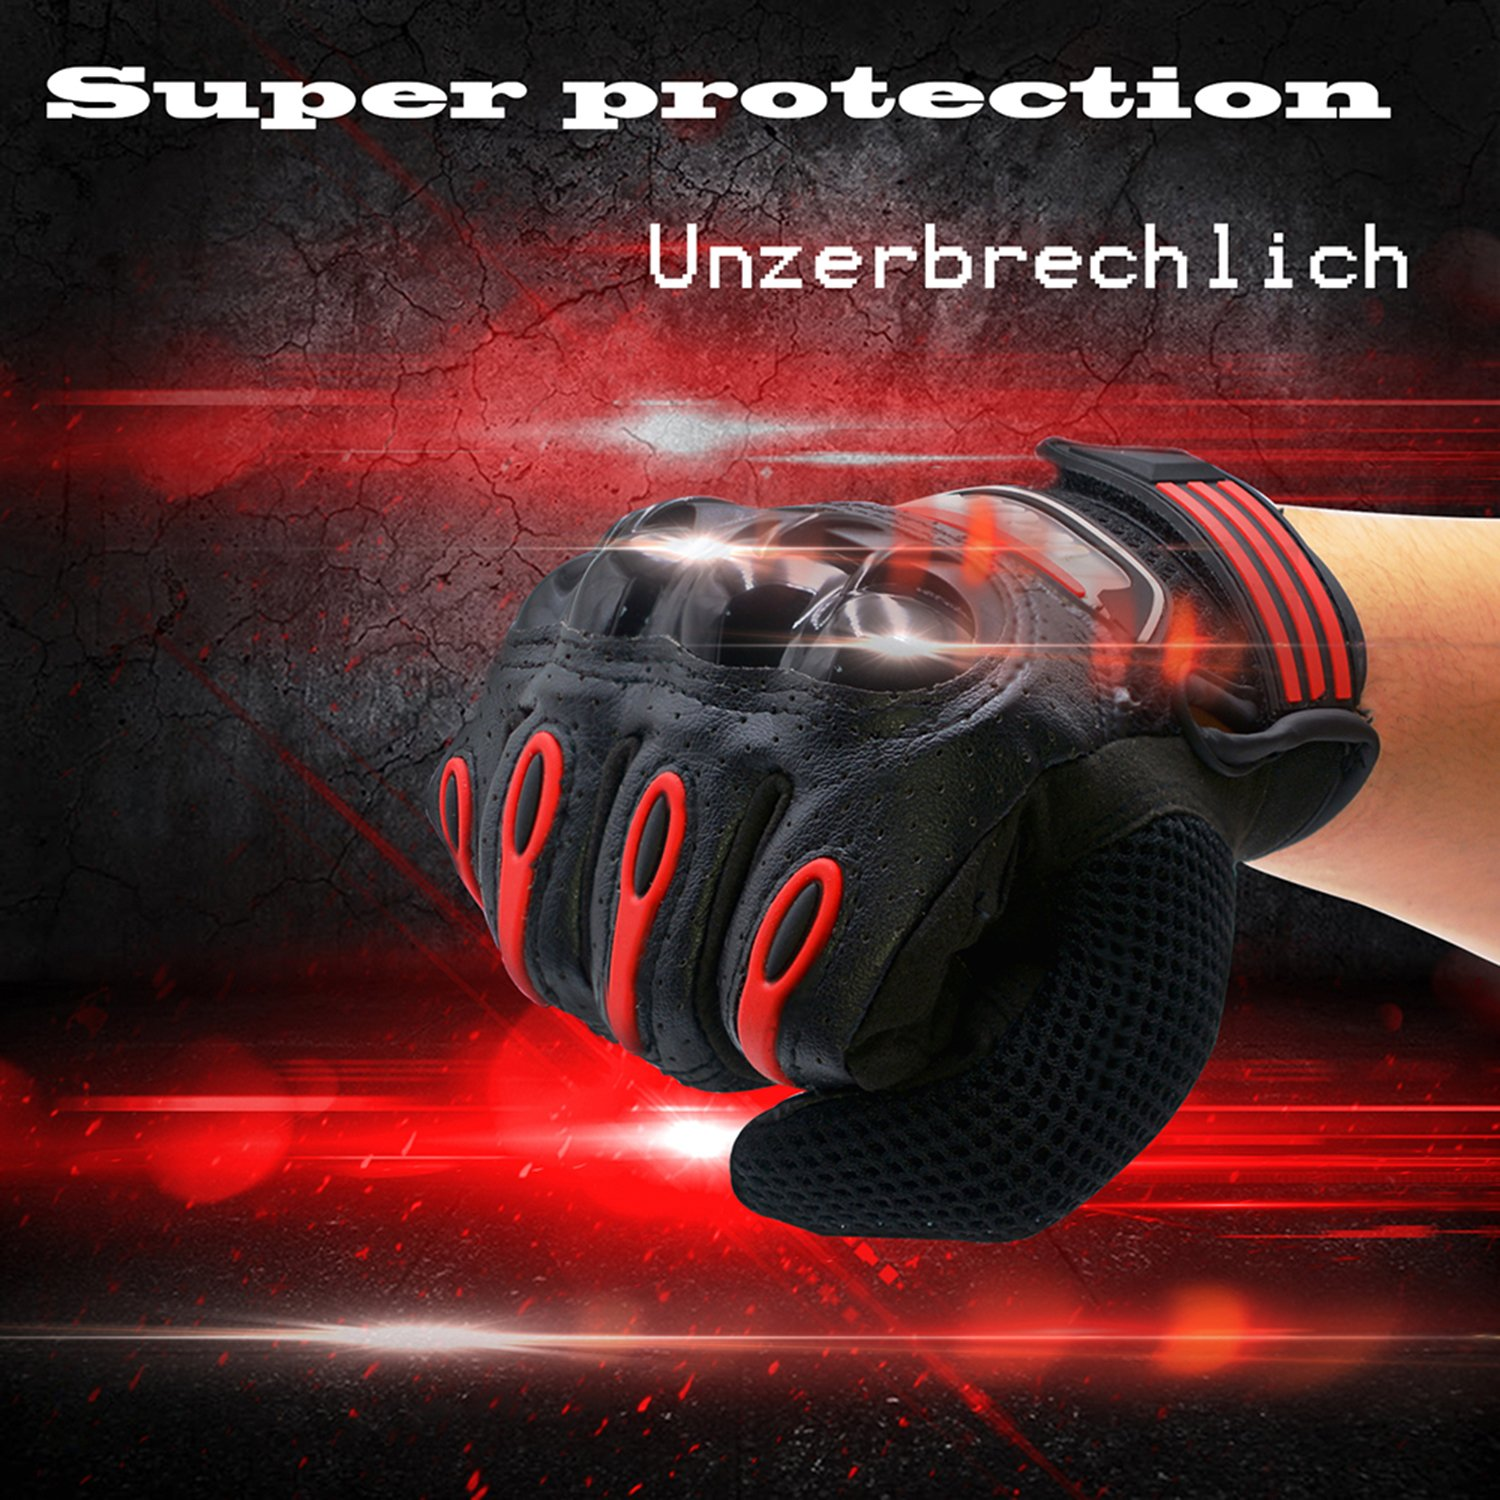 Pro-biker Motorcycle Gloves Unisex Full Finger Touch Screen Powersports Racing Gloves XL QM193 black/&red